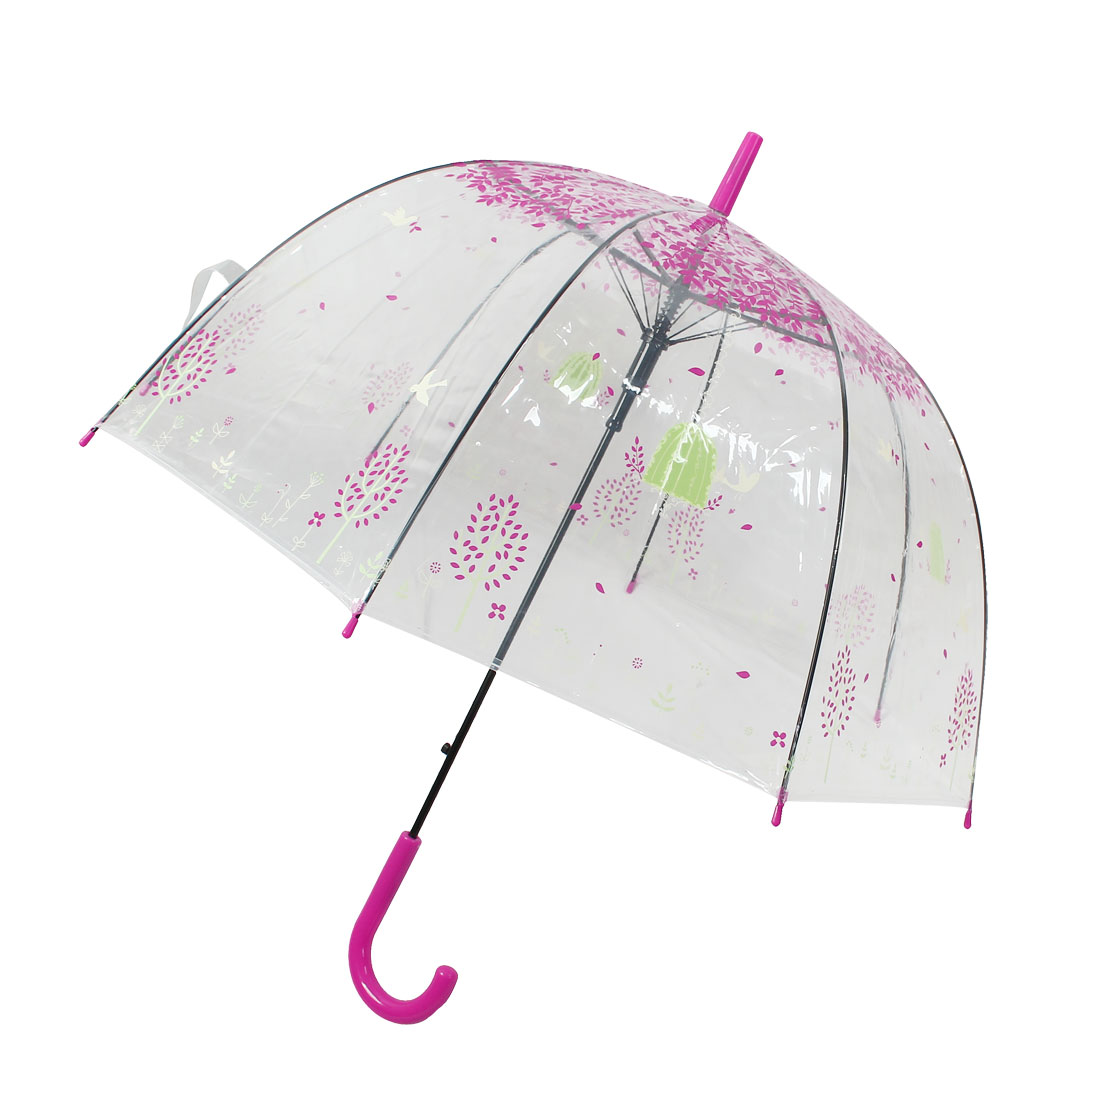 Leaves Birds Pattern Umbrella Rain Gear Hooked Handle Fuchsia Clear